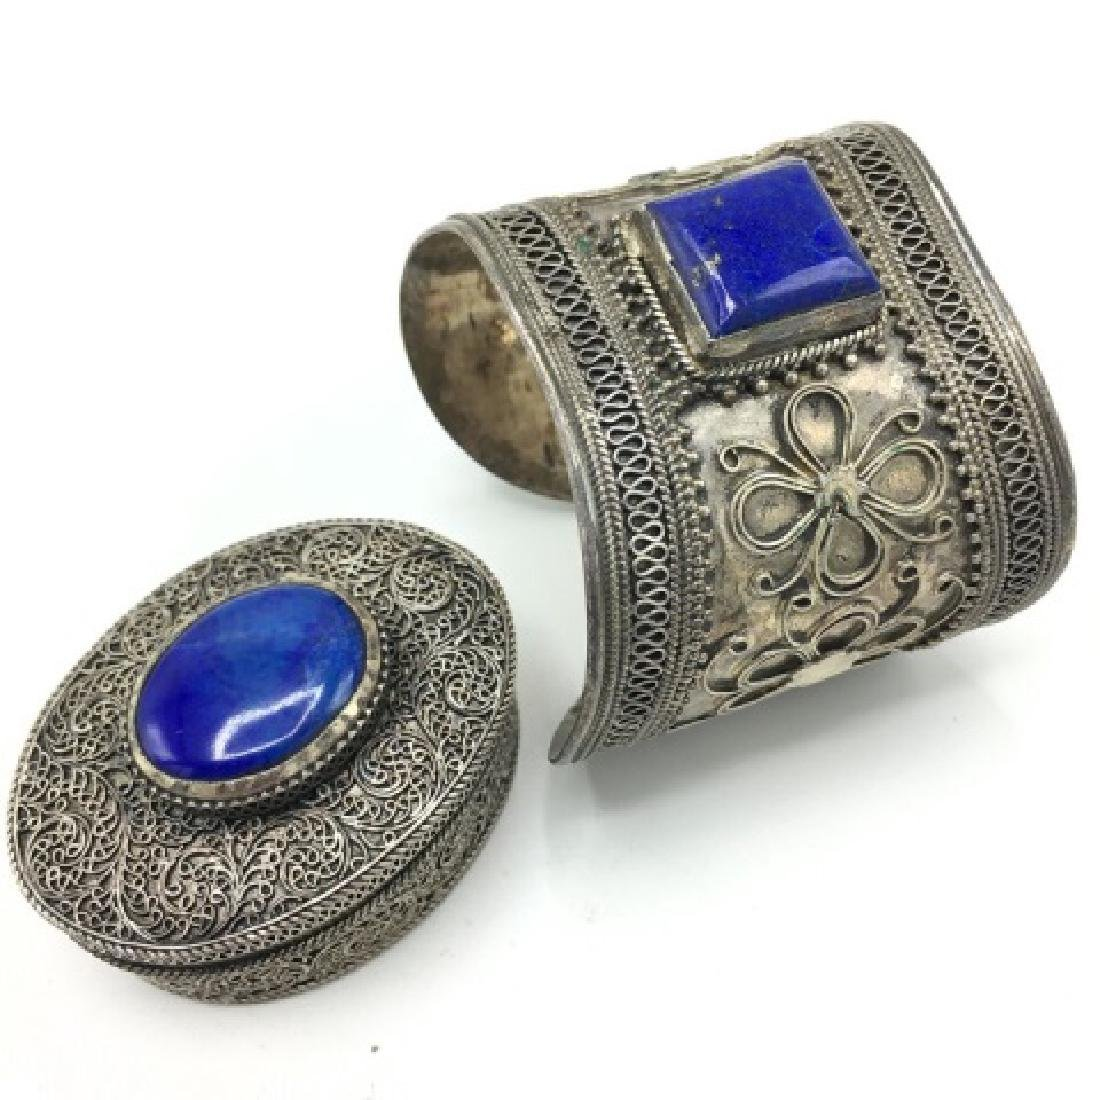 Vintage Silver Ethnic Cuff & Pill Box with Stones